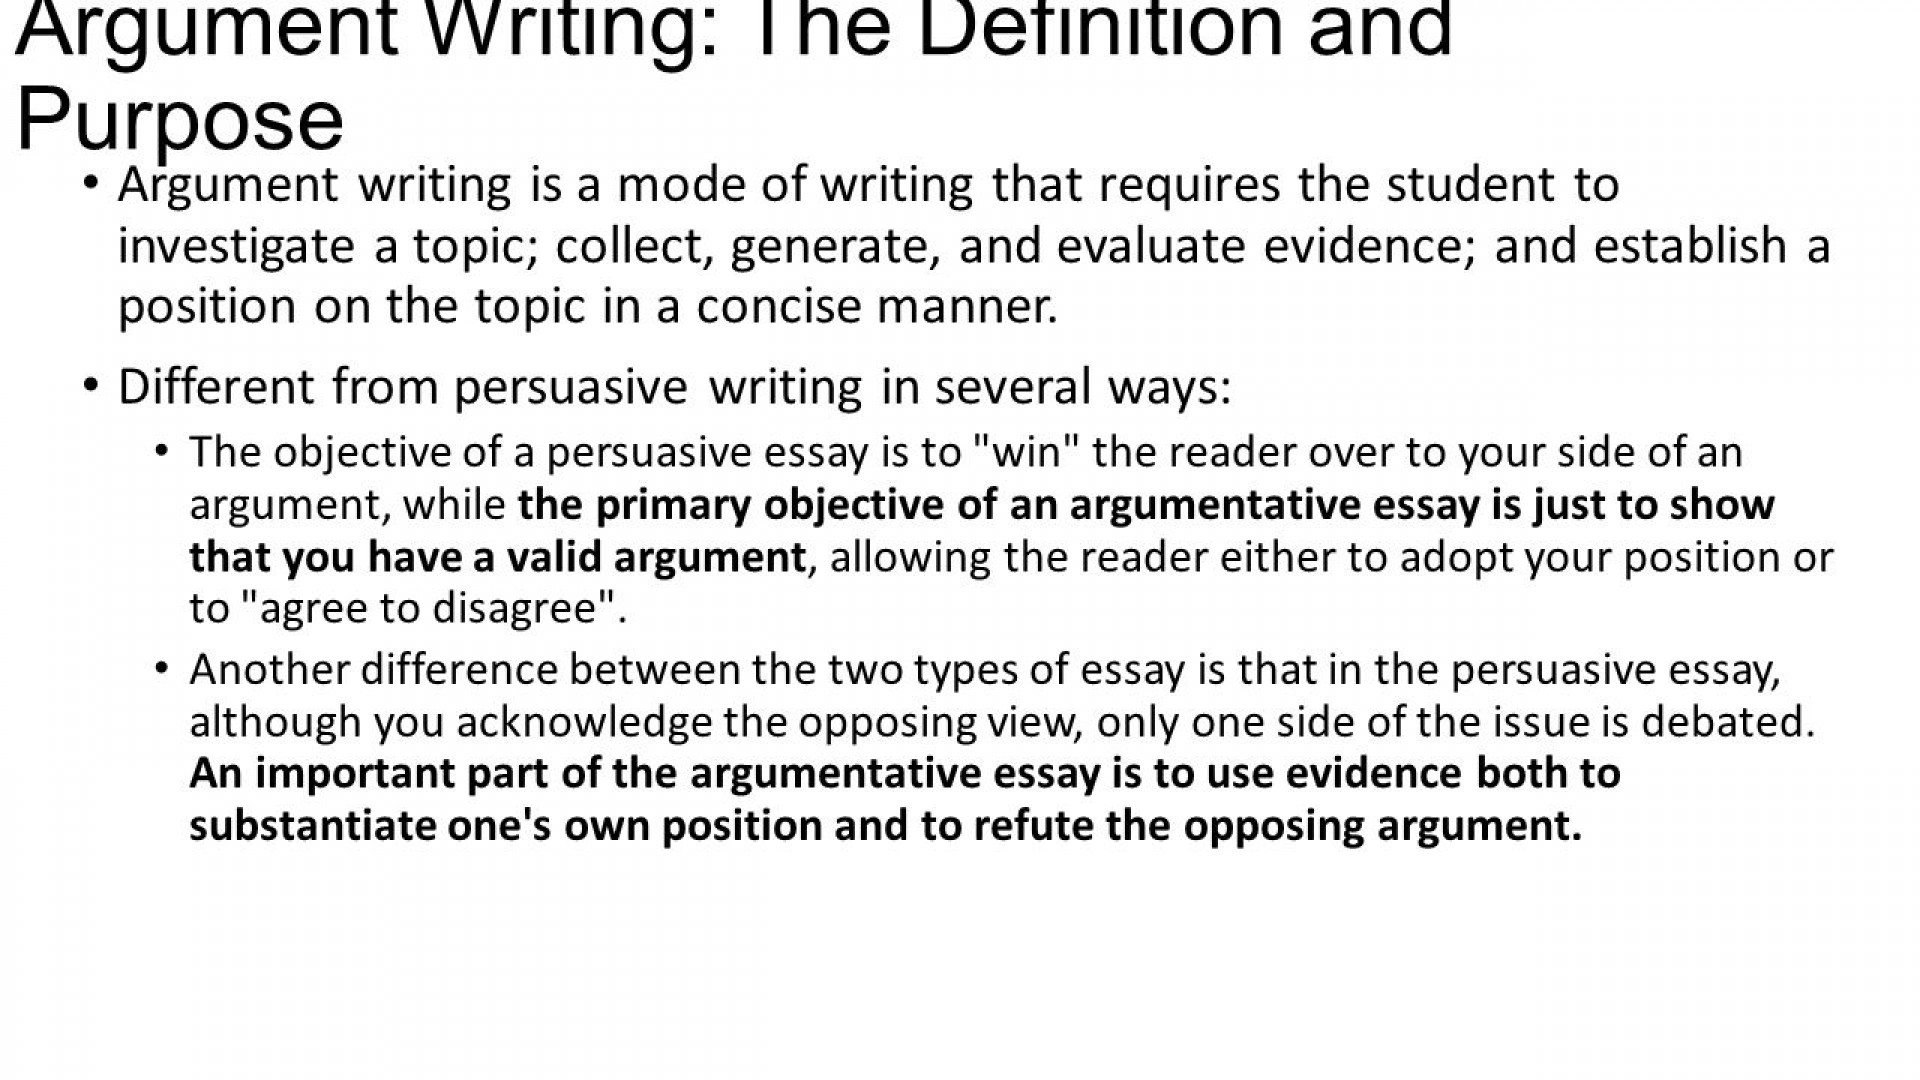 003 Slide Argumentative Writing Definition Essay Fearsome Wikipedia Define Format & Examples 1920